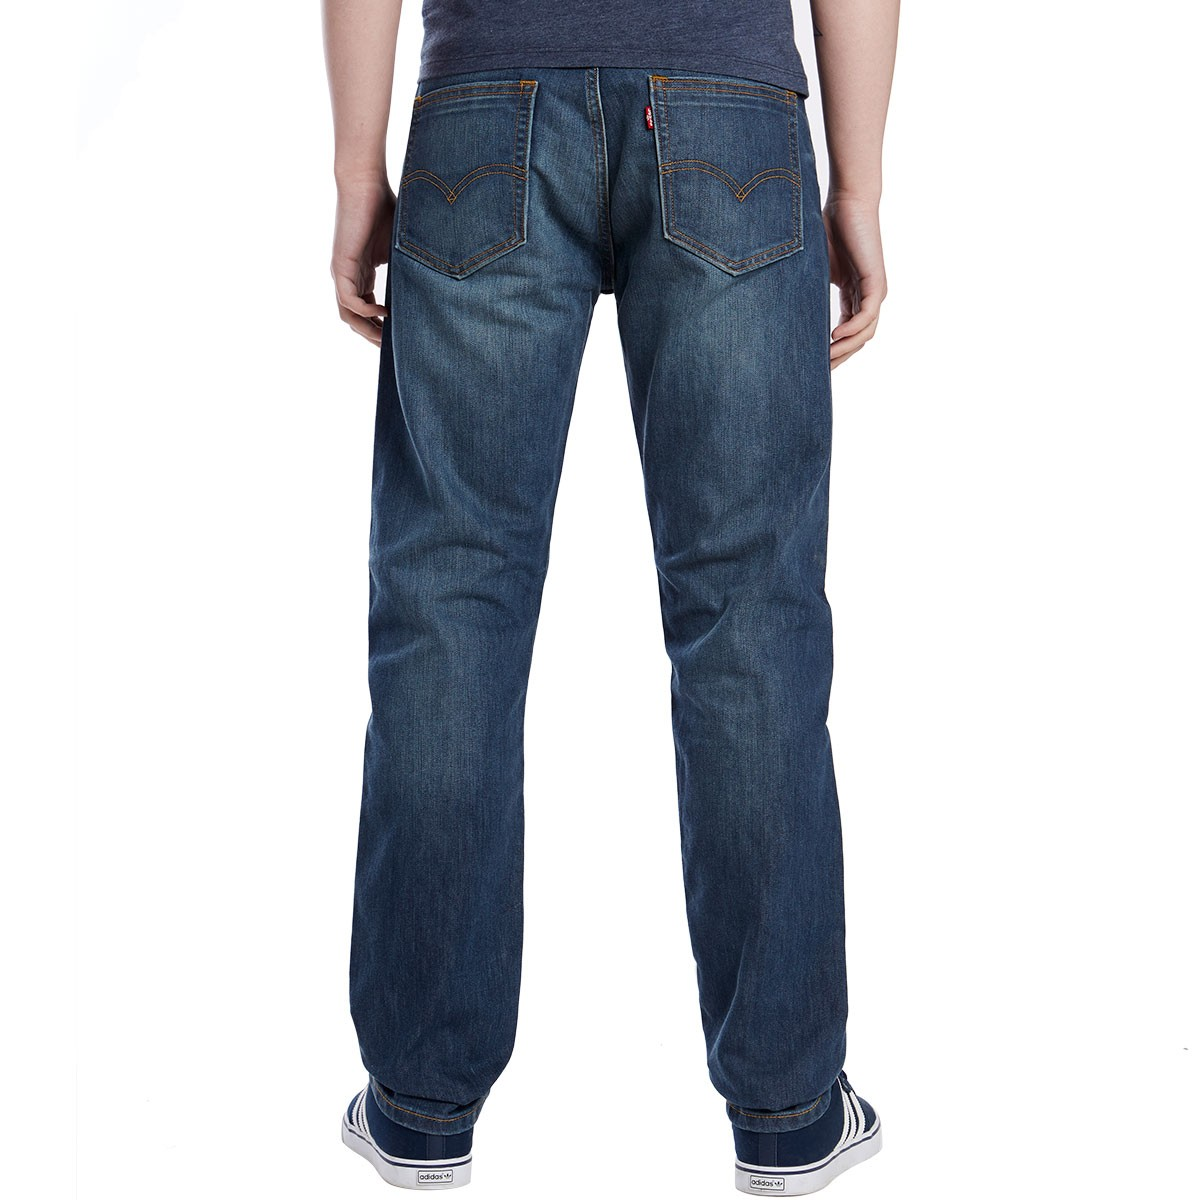 Although our jeans fit true to size, they have a slim straight body, meaning a slimmer fit through the leg and a more tapered leg opening.